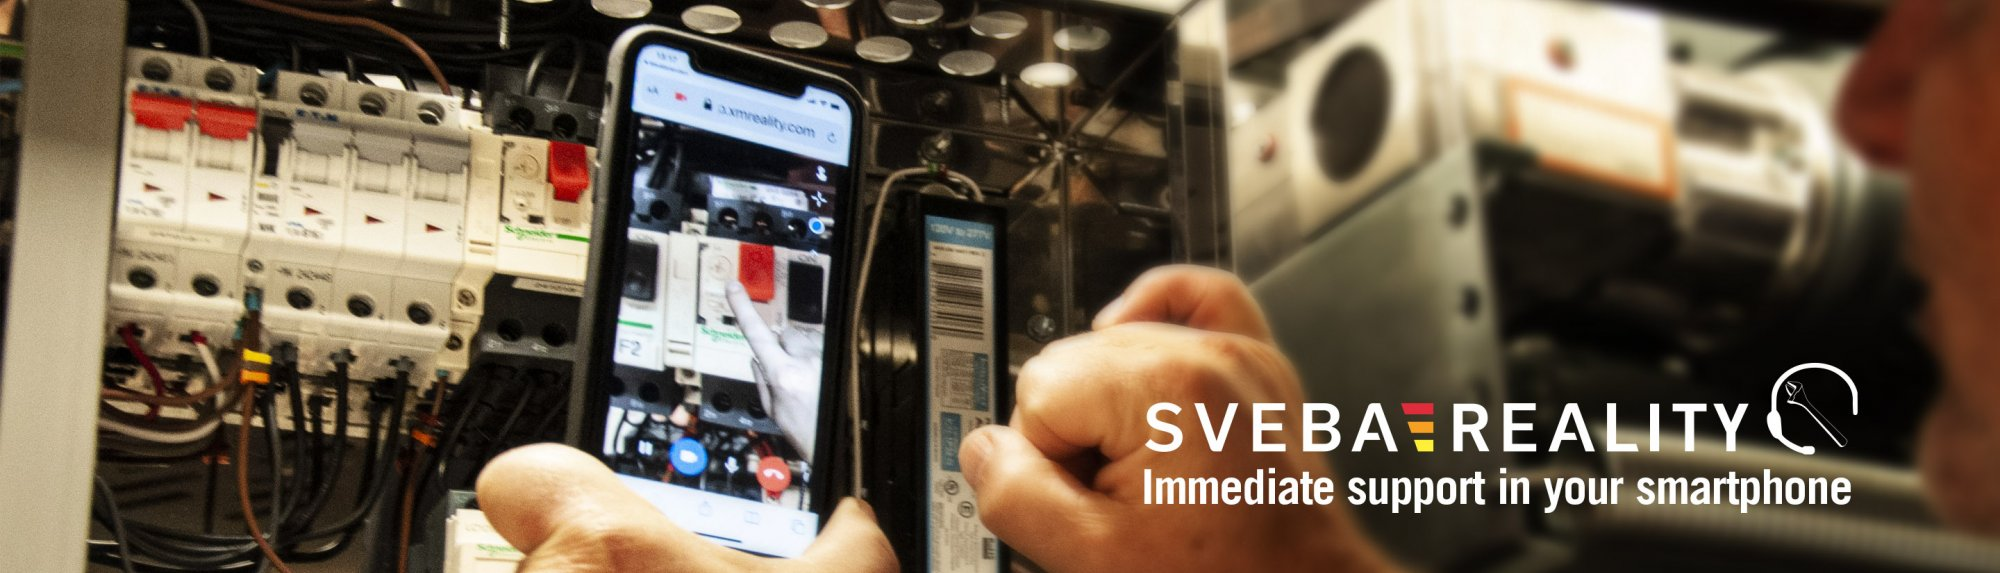 Immediate support for your technicians in the bakery with sveba reality digital support in your smartphone